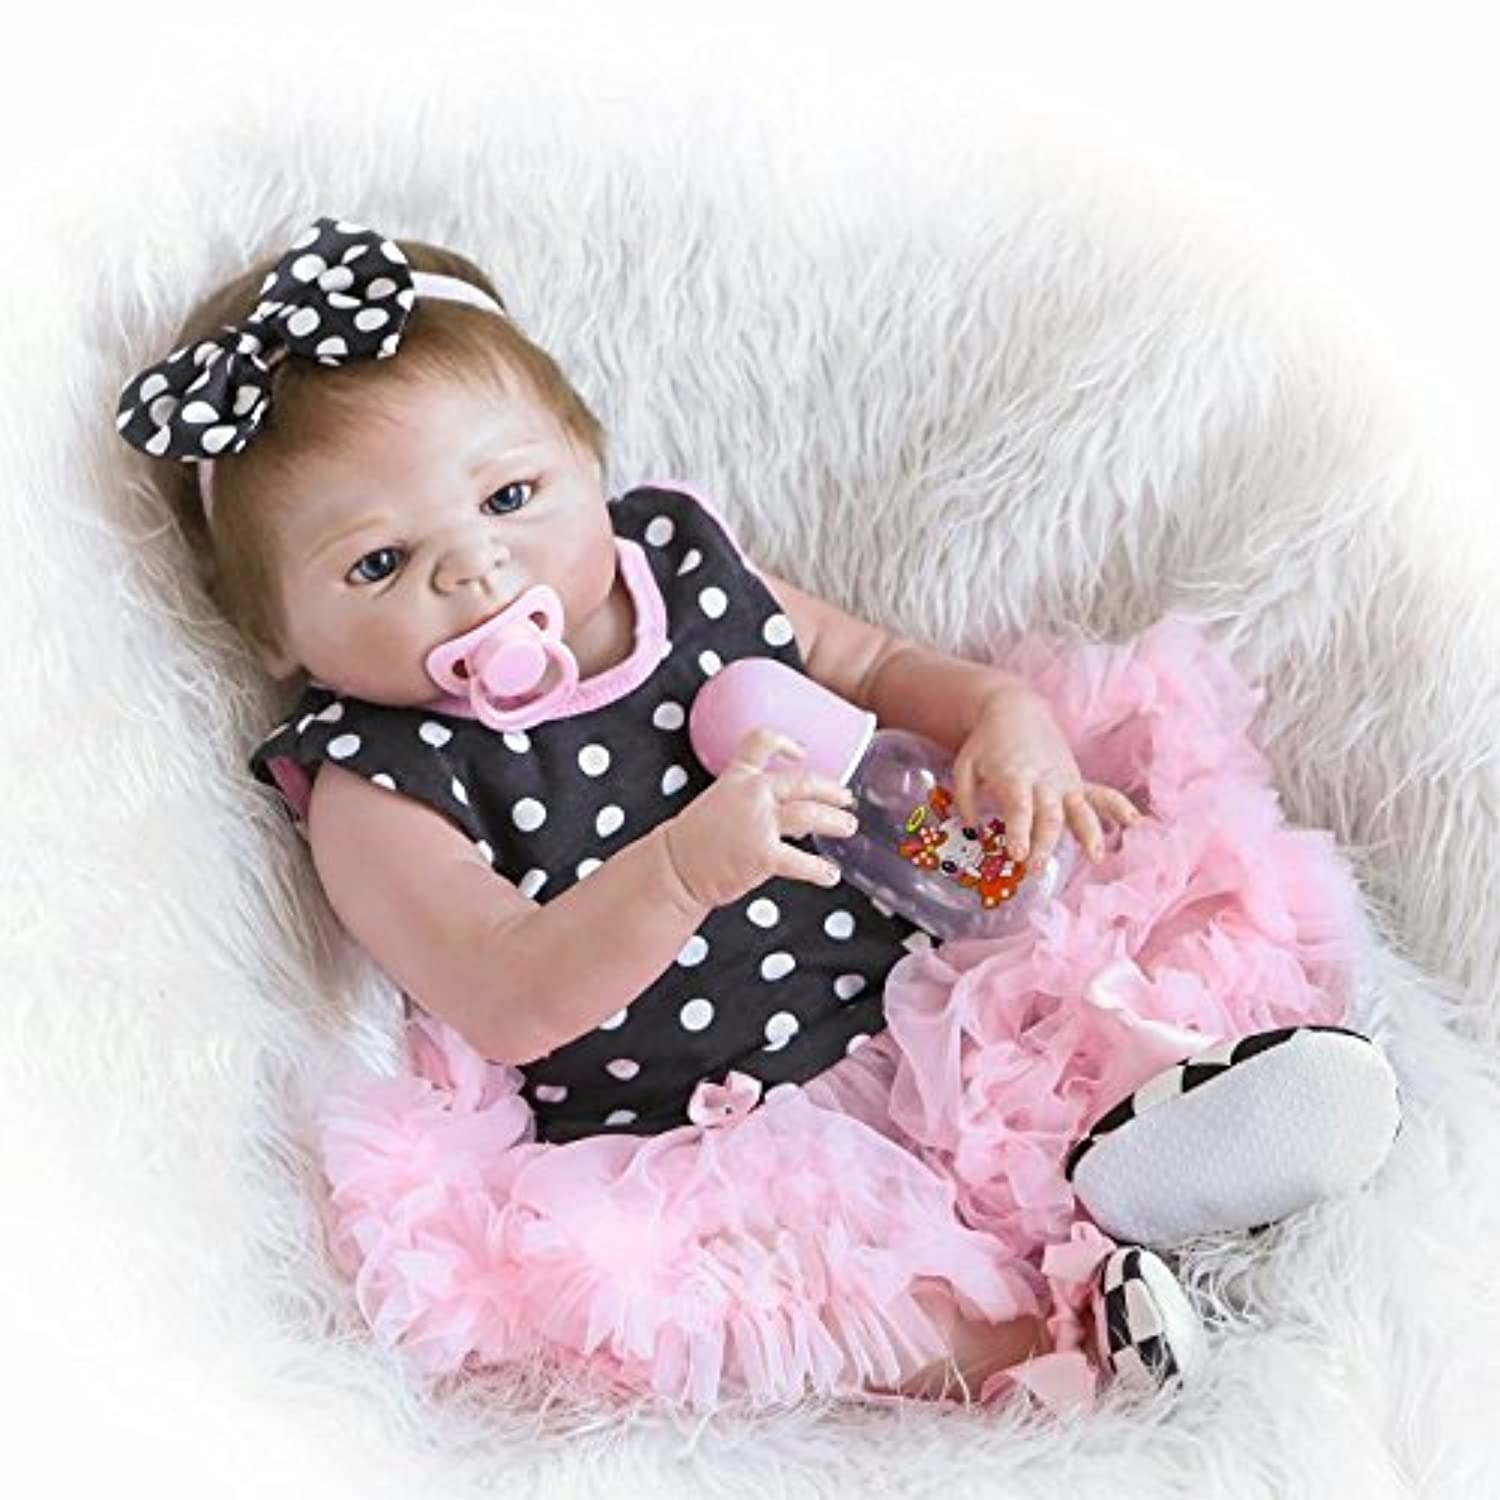 Nkol Reborn Baby Dolls Silicone Full Body Newborn Realistic Baby Toddler with Pink Tutu Skirt (Waterproof, Magnetic